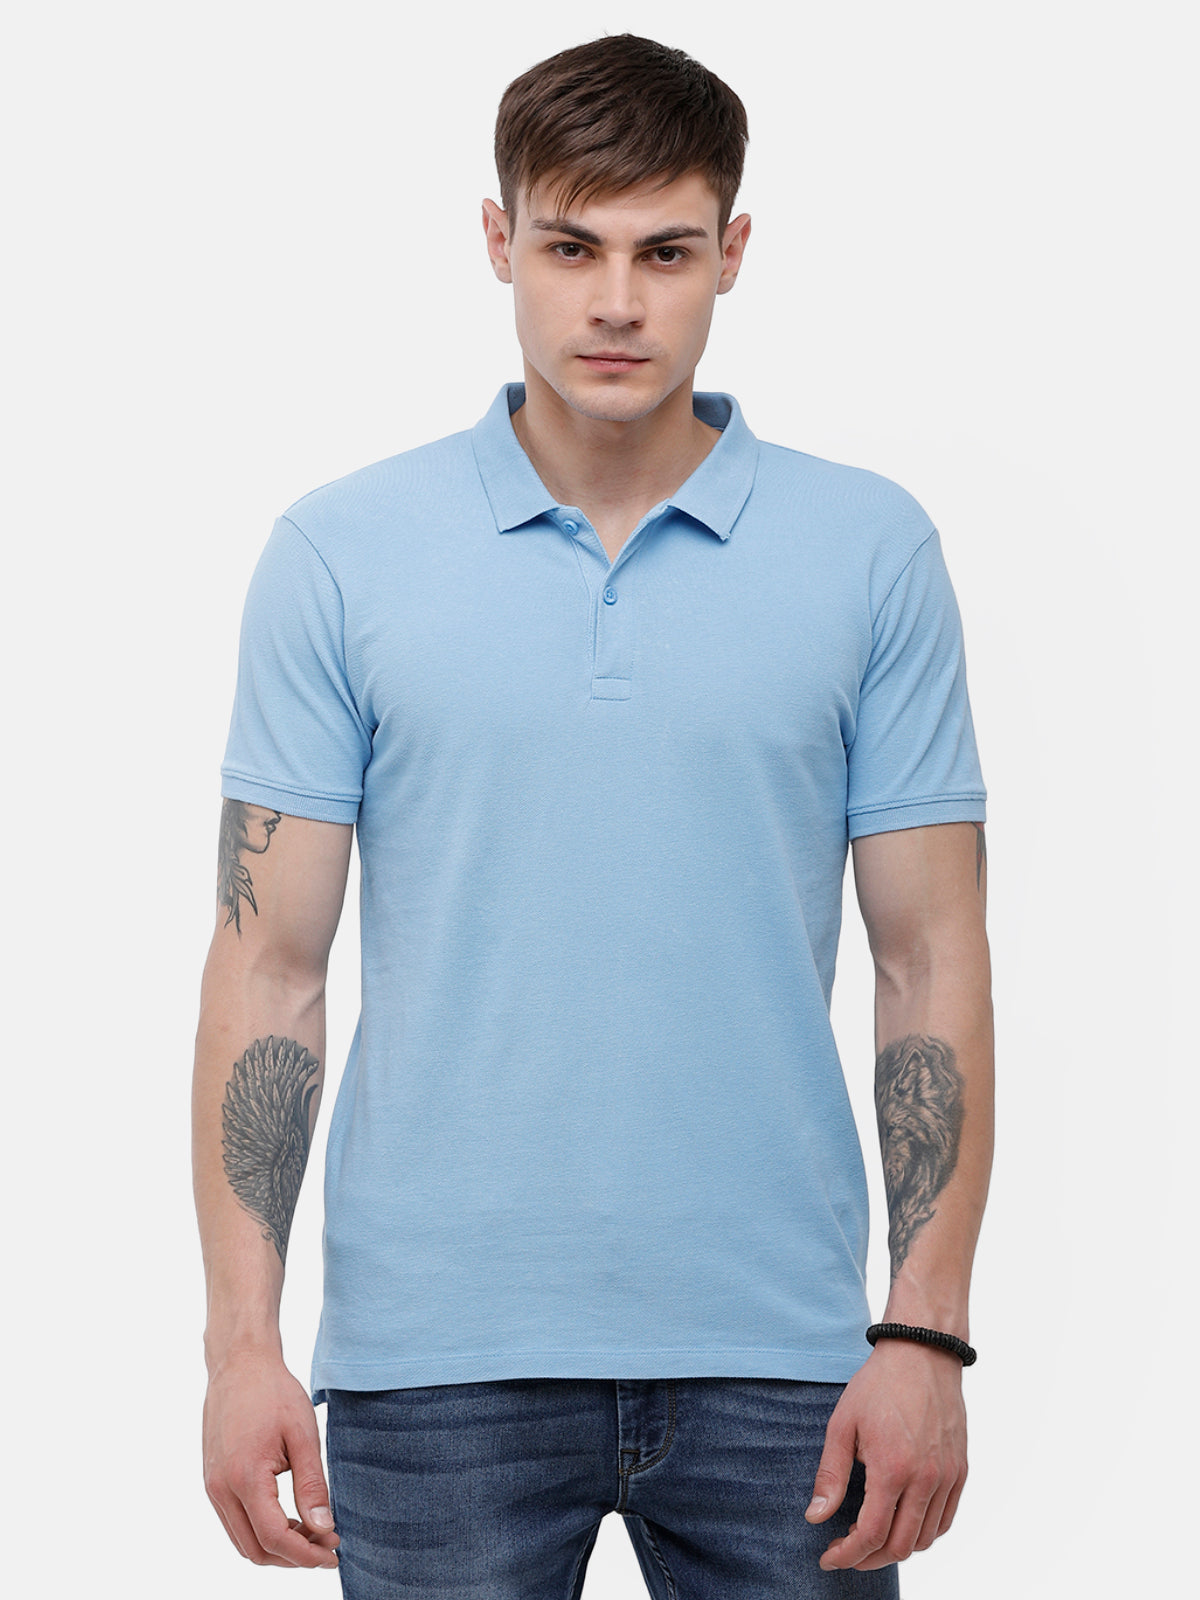 Men's Dust blue polo T-shirt